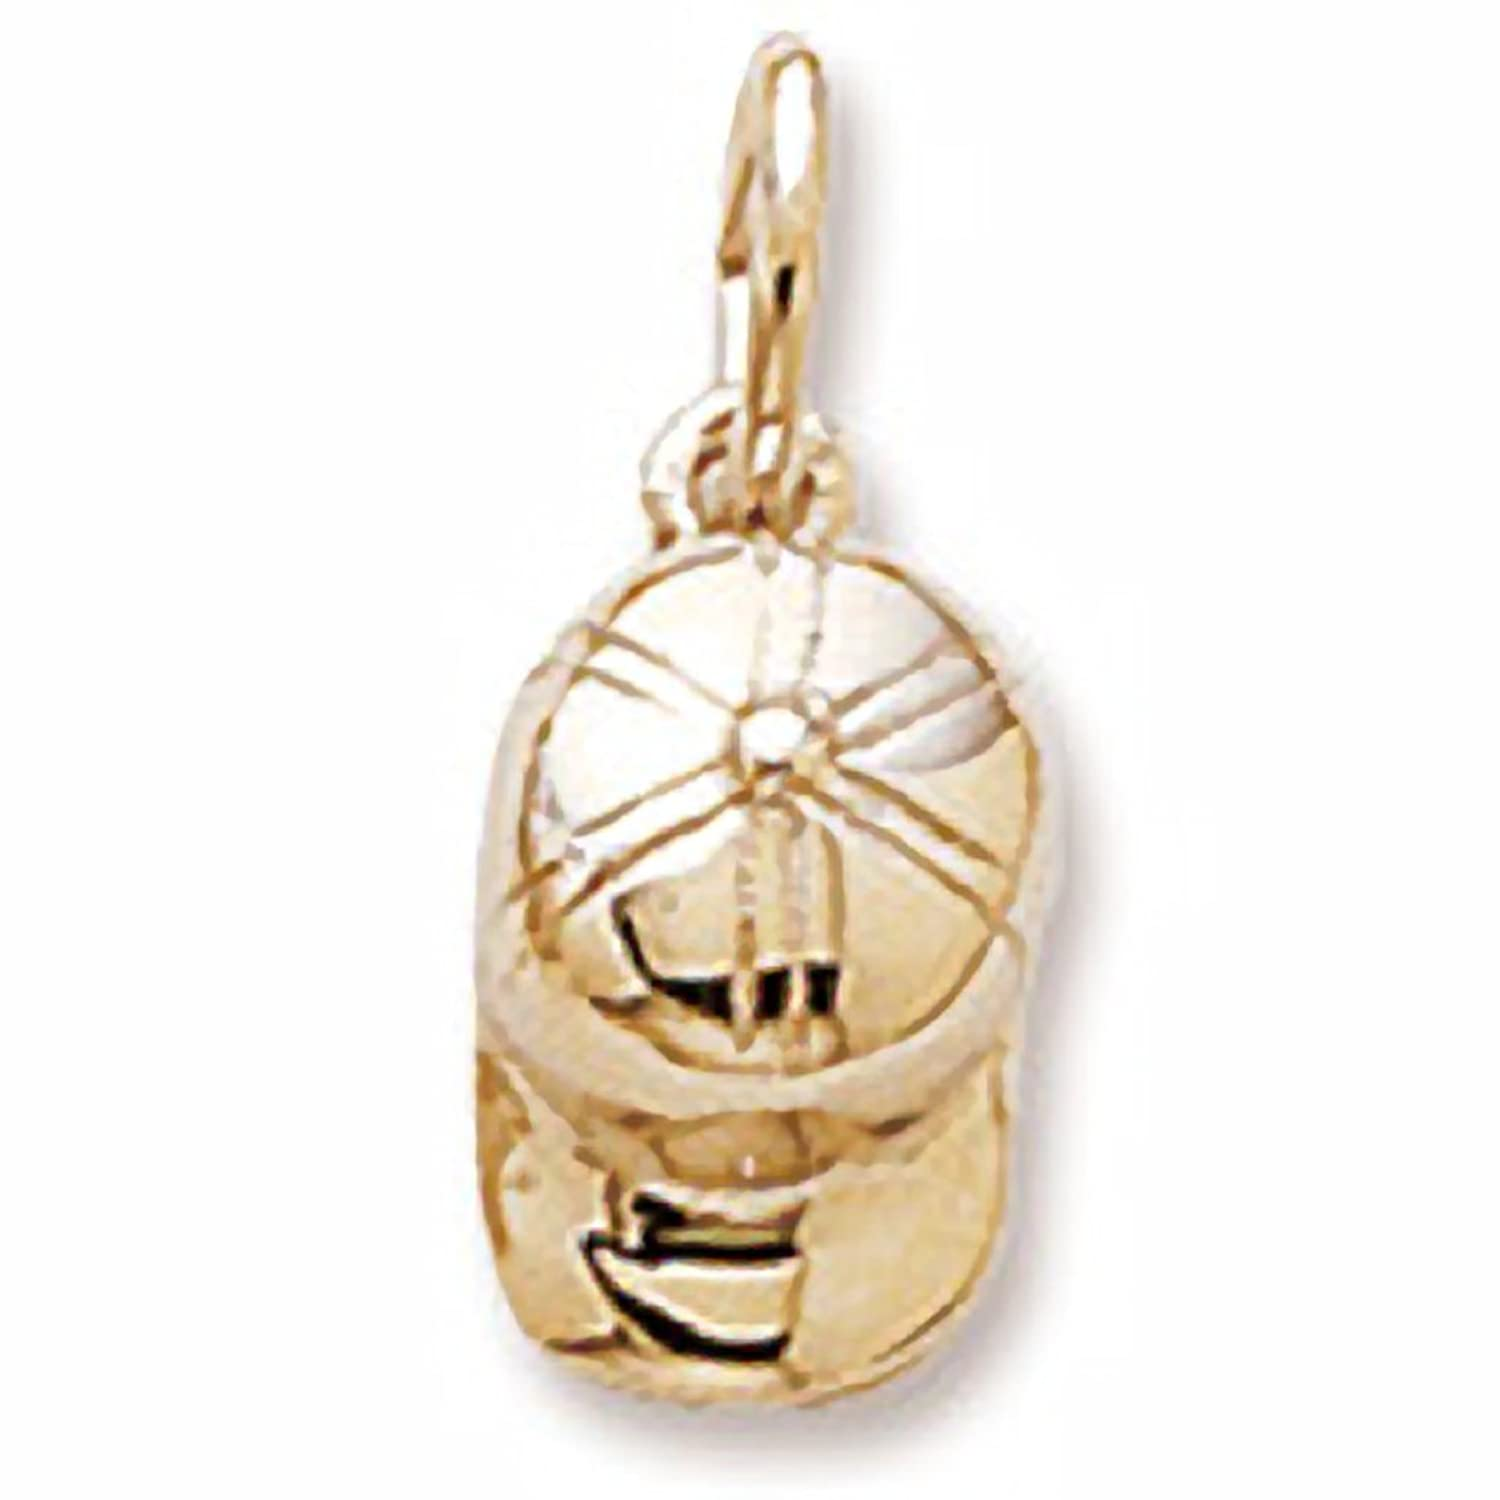 10k Yellow Gold Baseball Cap Charm, Charms for Bracelets and Necklaces